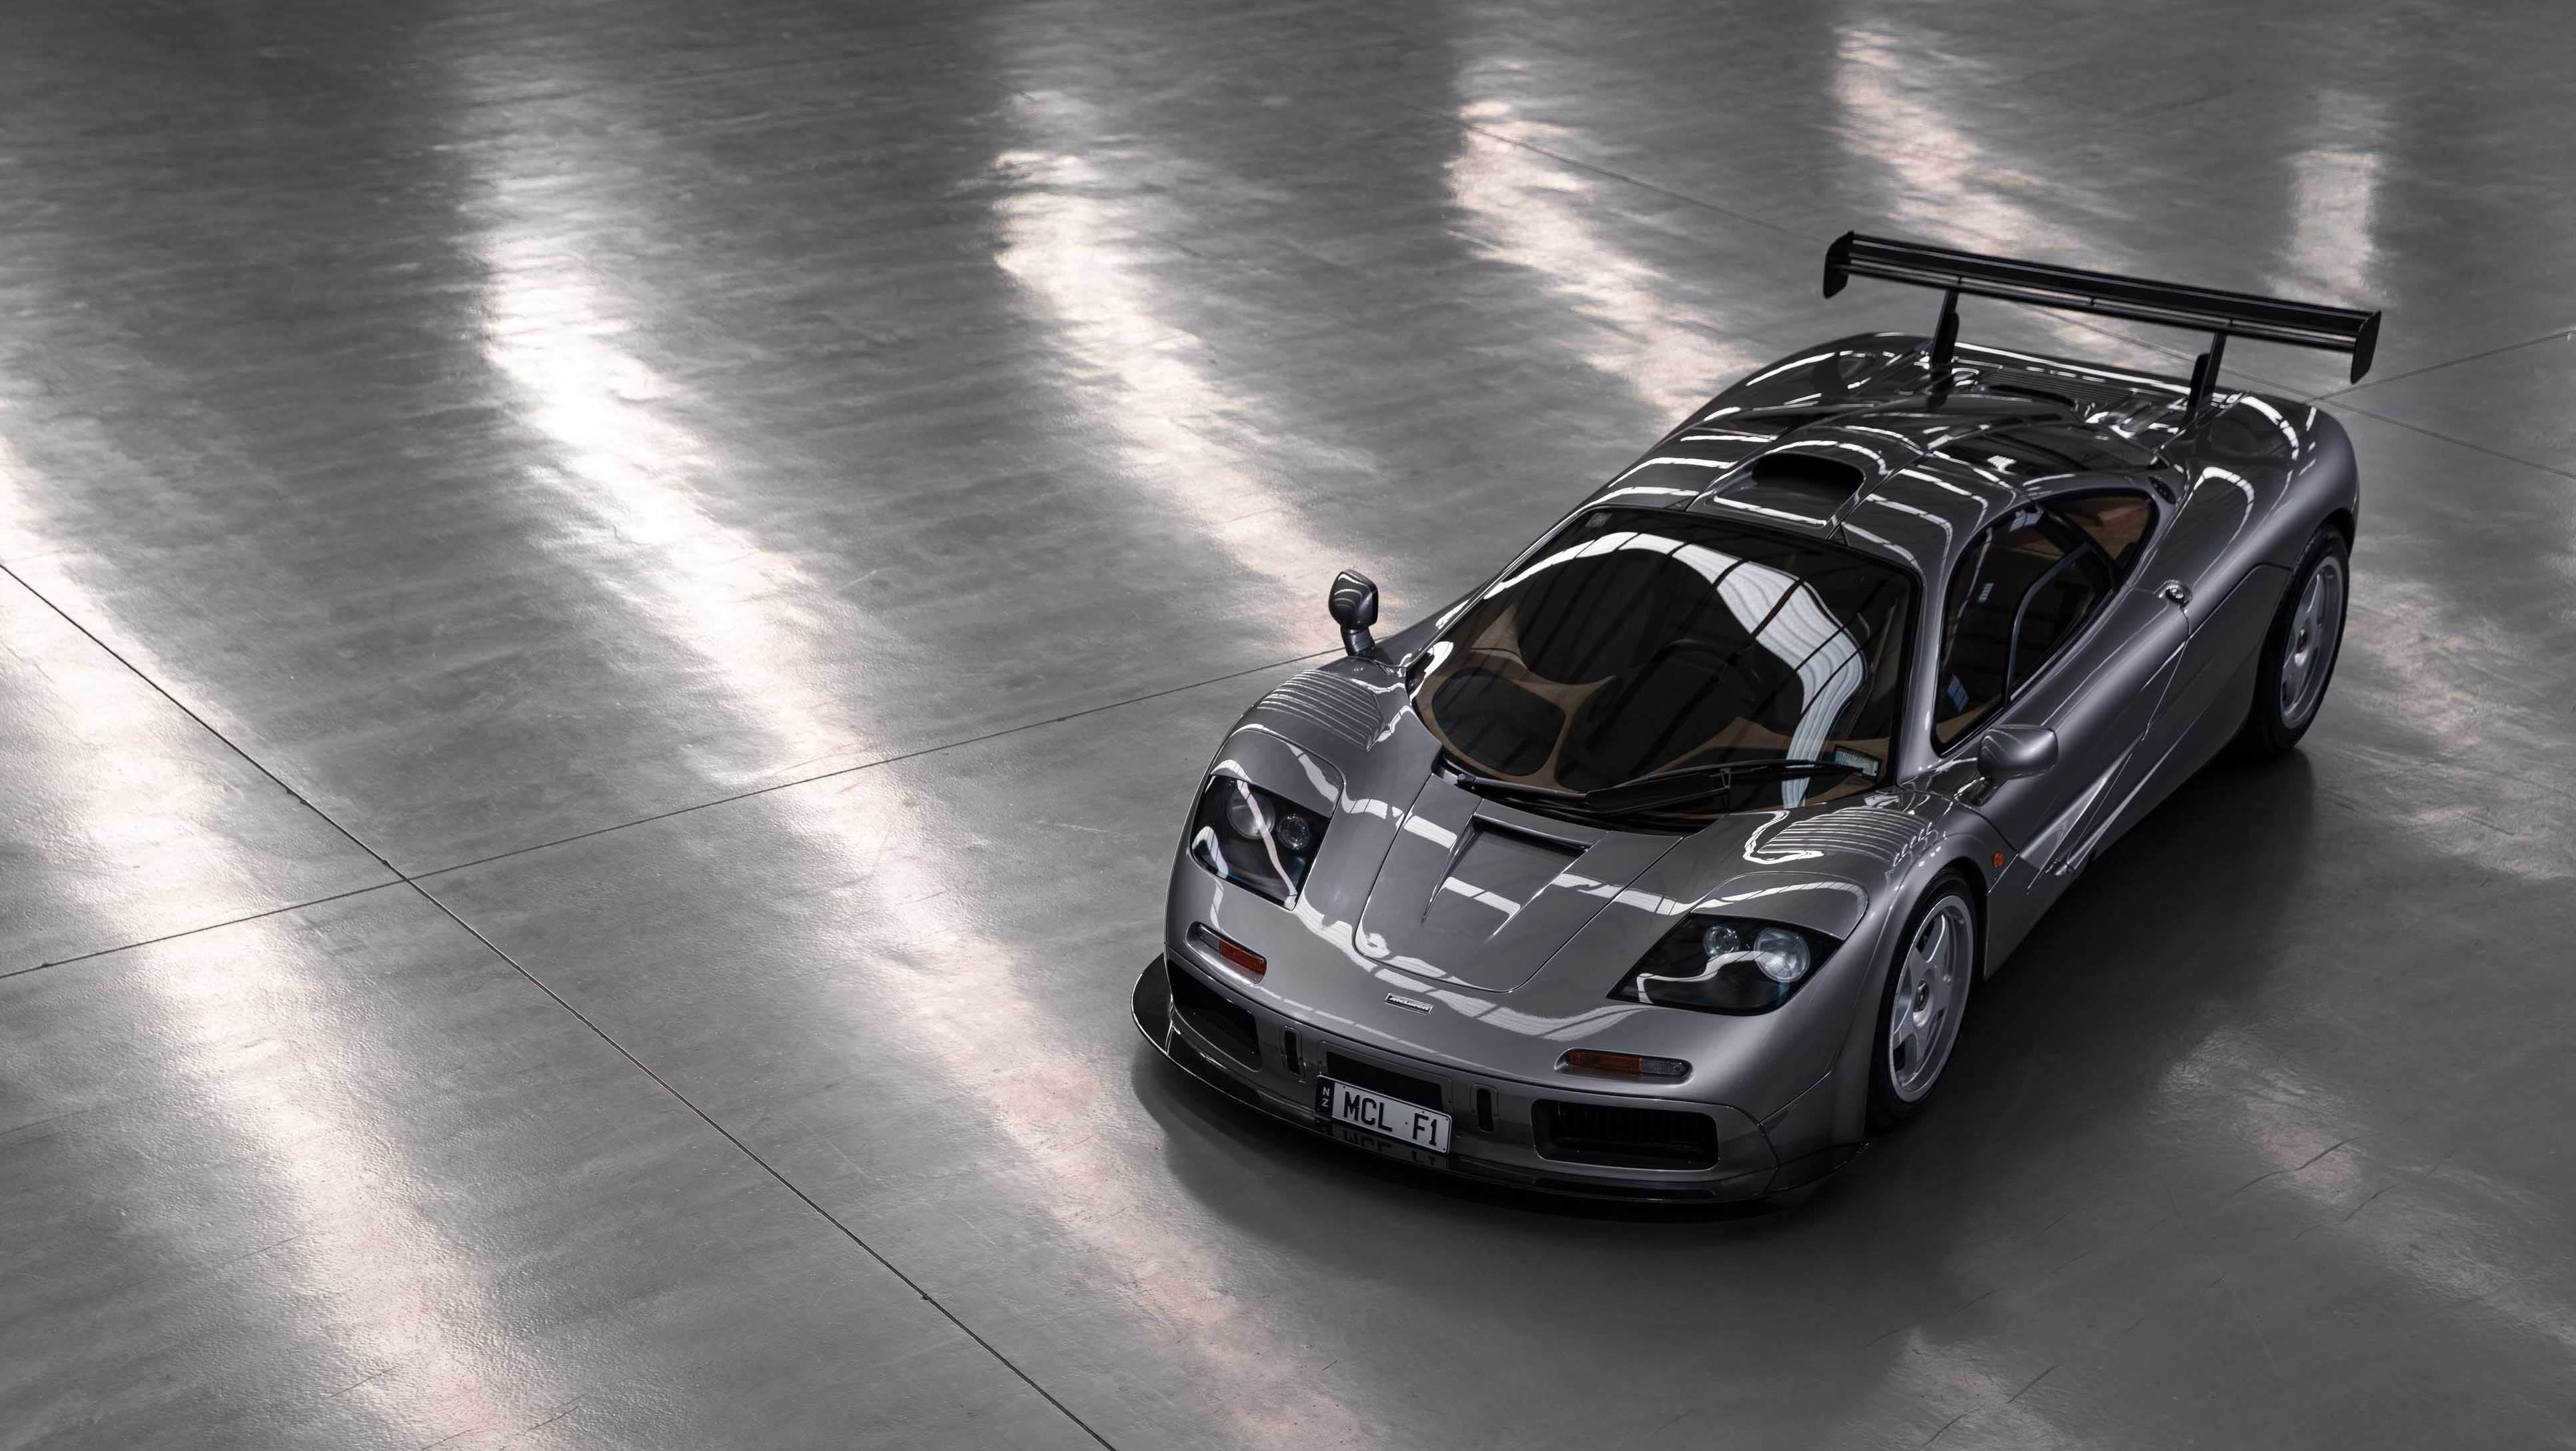 One Of Two Lm Spec Mclaren F1 Conversions Could Be Most Expensive F1